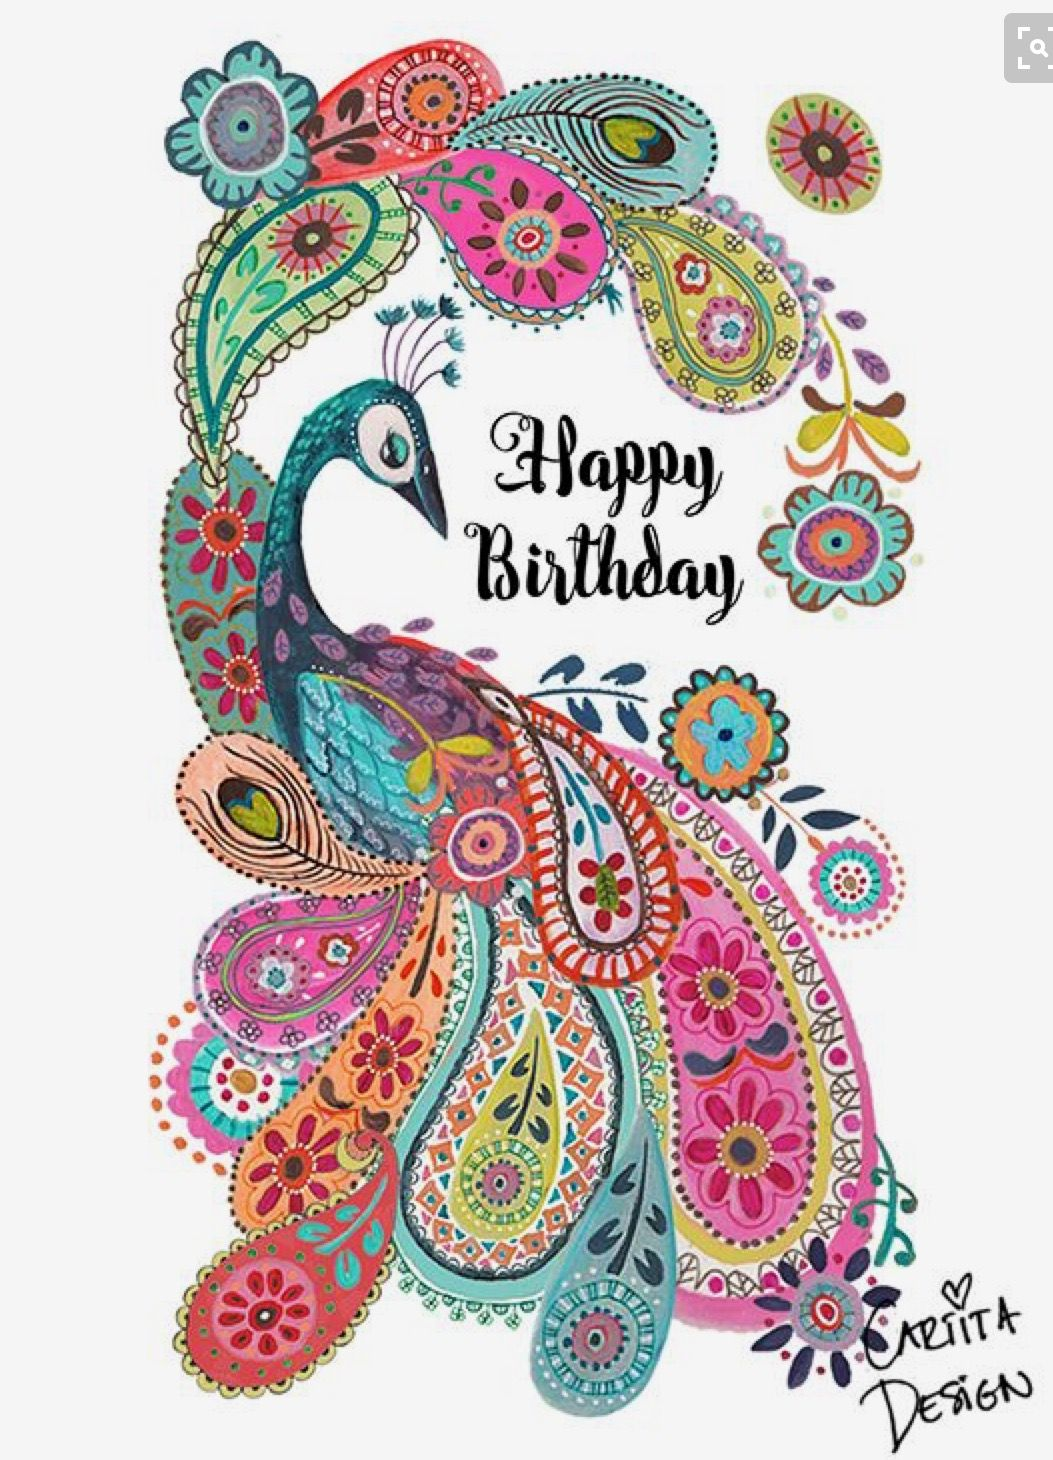 Pin by Paula Simon on Greetings from Me Happy birthday